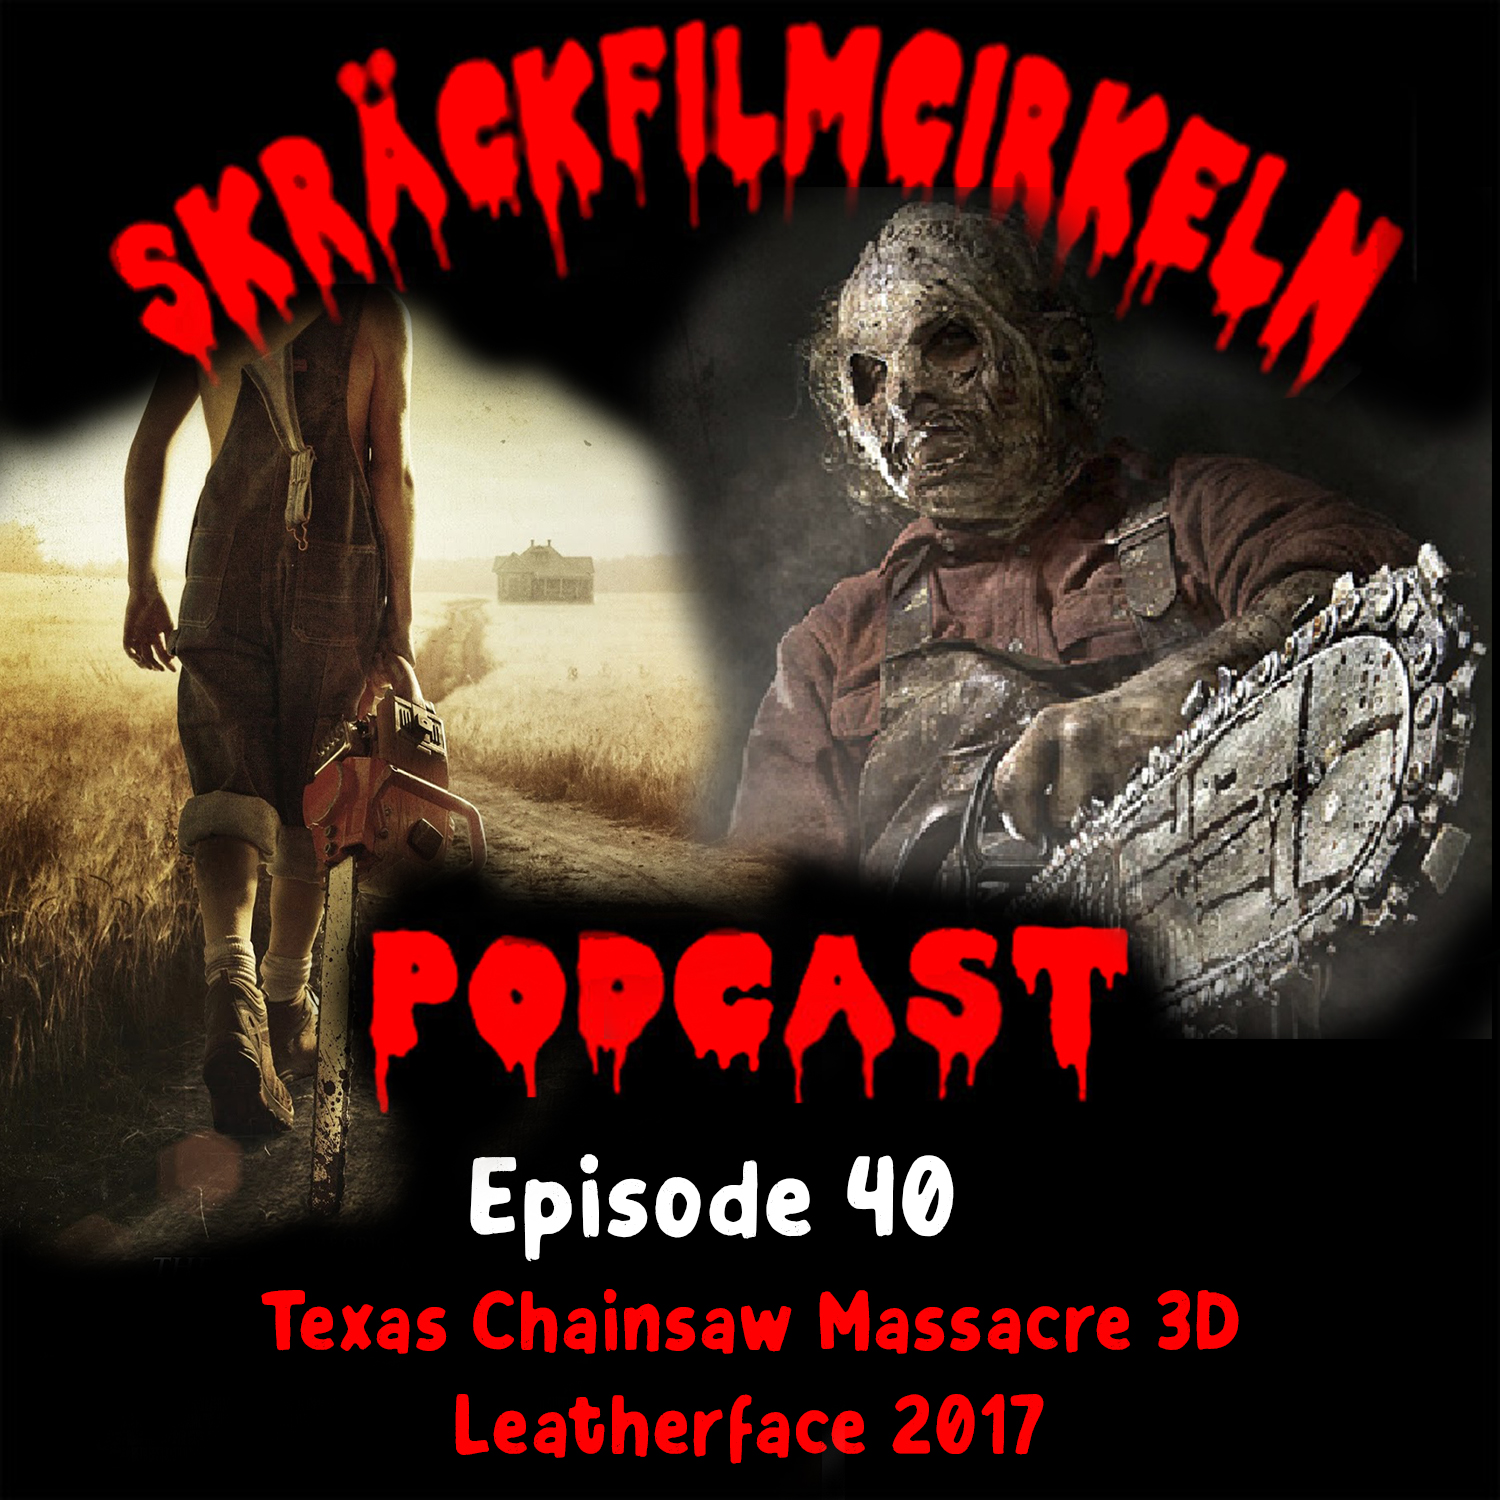 Avsnitt 40 – Texas Chainsaw Massacre 7-8 Double Bill